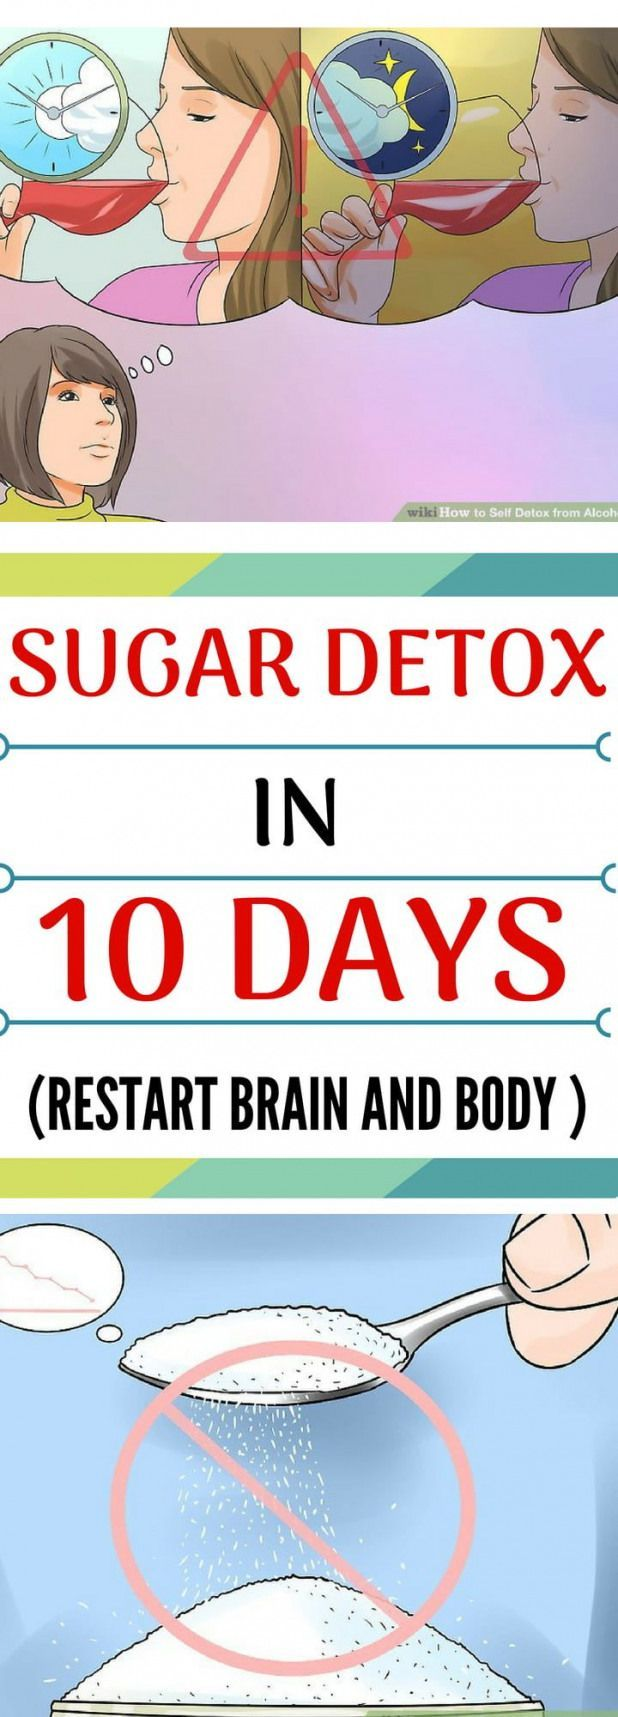 POPSUGAR #sugardetoxplan Sugar Detox In 10 Days (Restart Brain and Body) #detoxsmoothie #sugardetoxplan